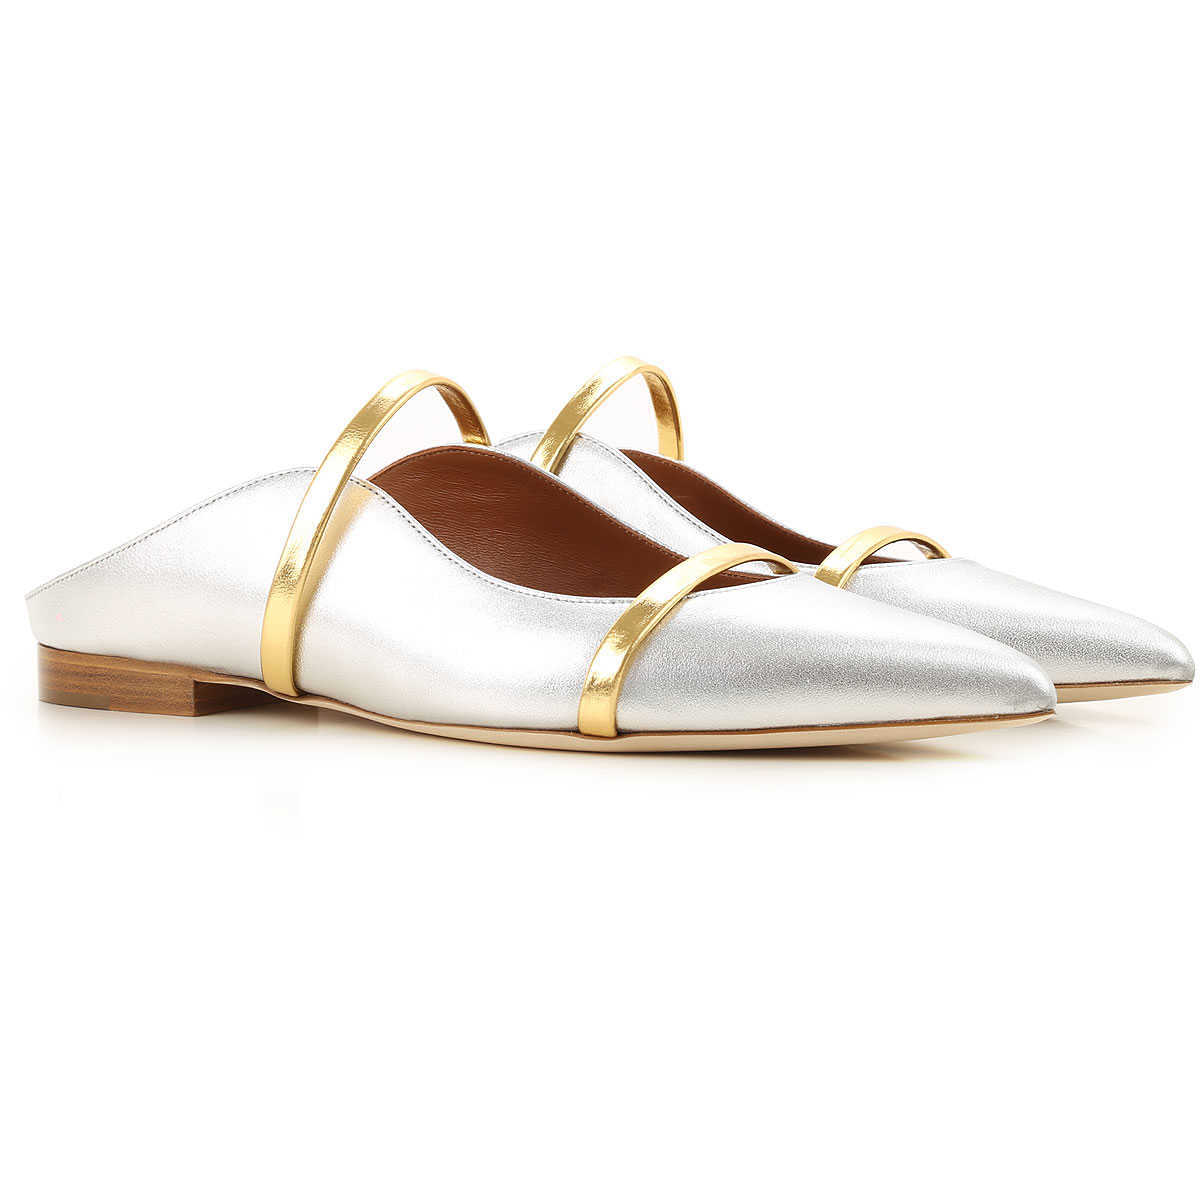 Malone Souliers Ballet Flats Ballerina Shoes for Women Silver Canada - GOOFASH - Womens BALLERINAS